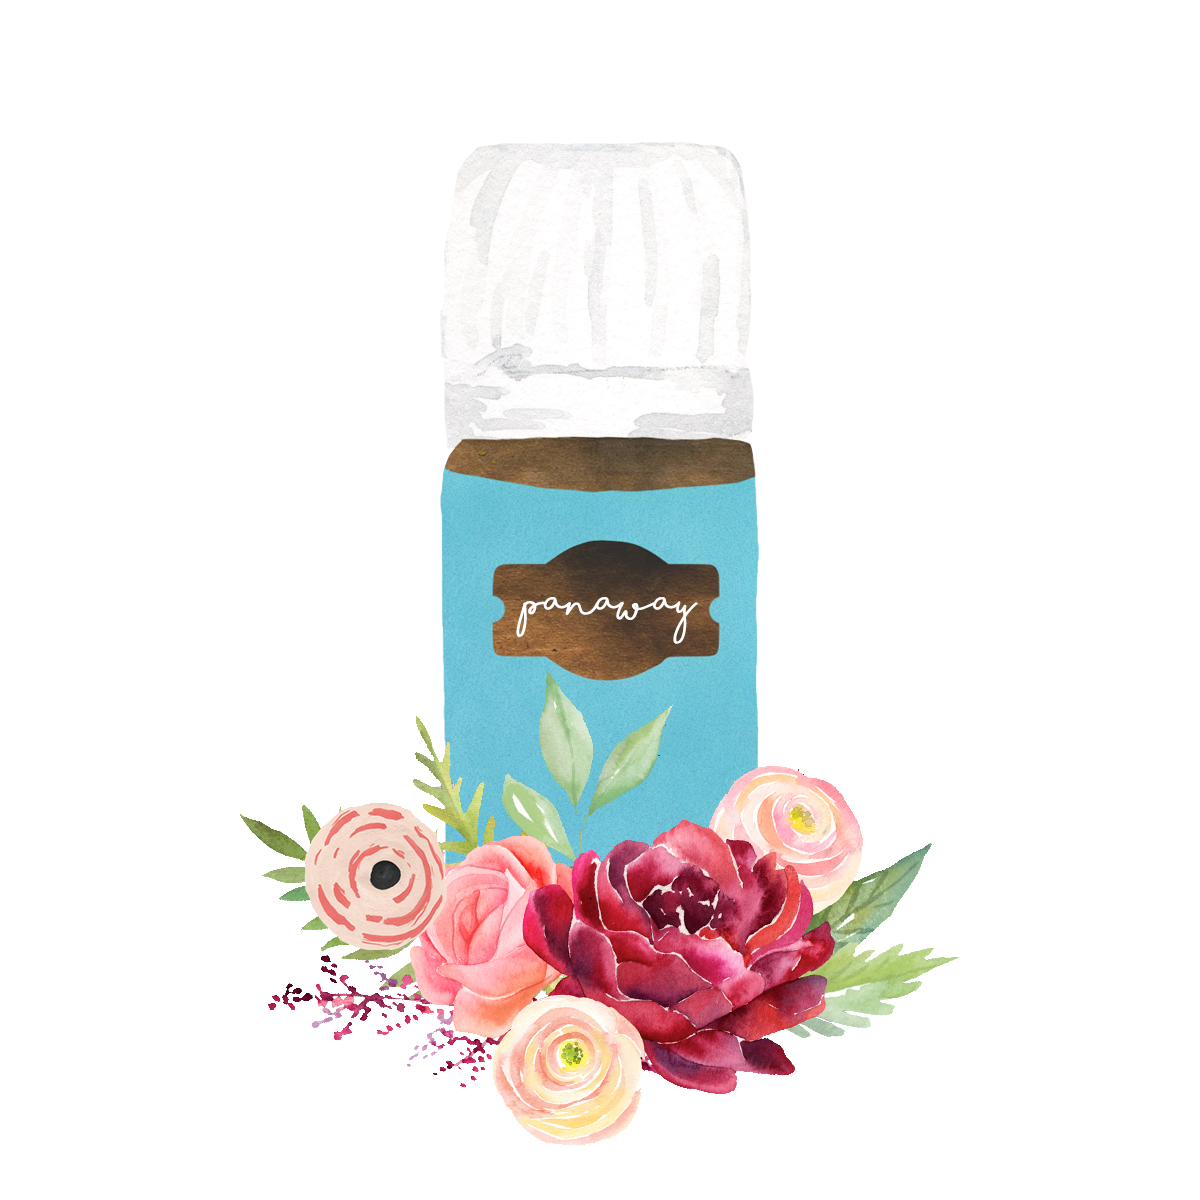 Panaway - Provides relief after exercise or rubbed on your belly once a month. You can also add to Epsom Salts for a dreamy bath time experience.